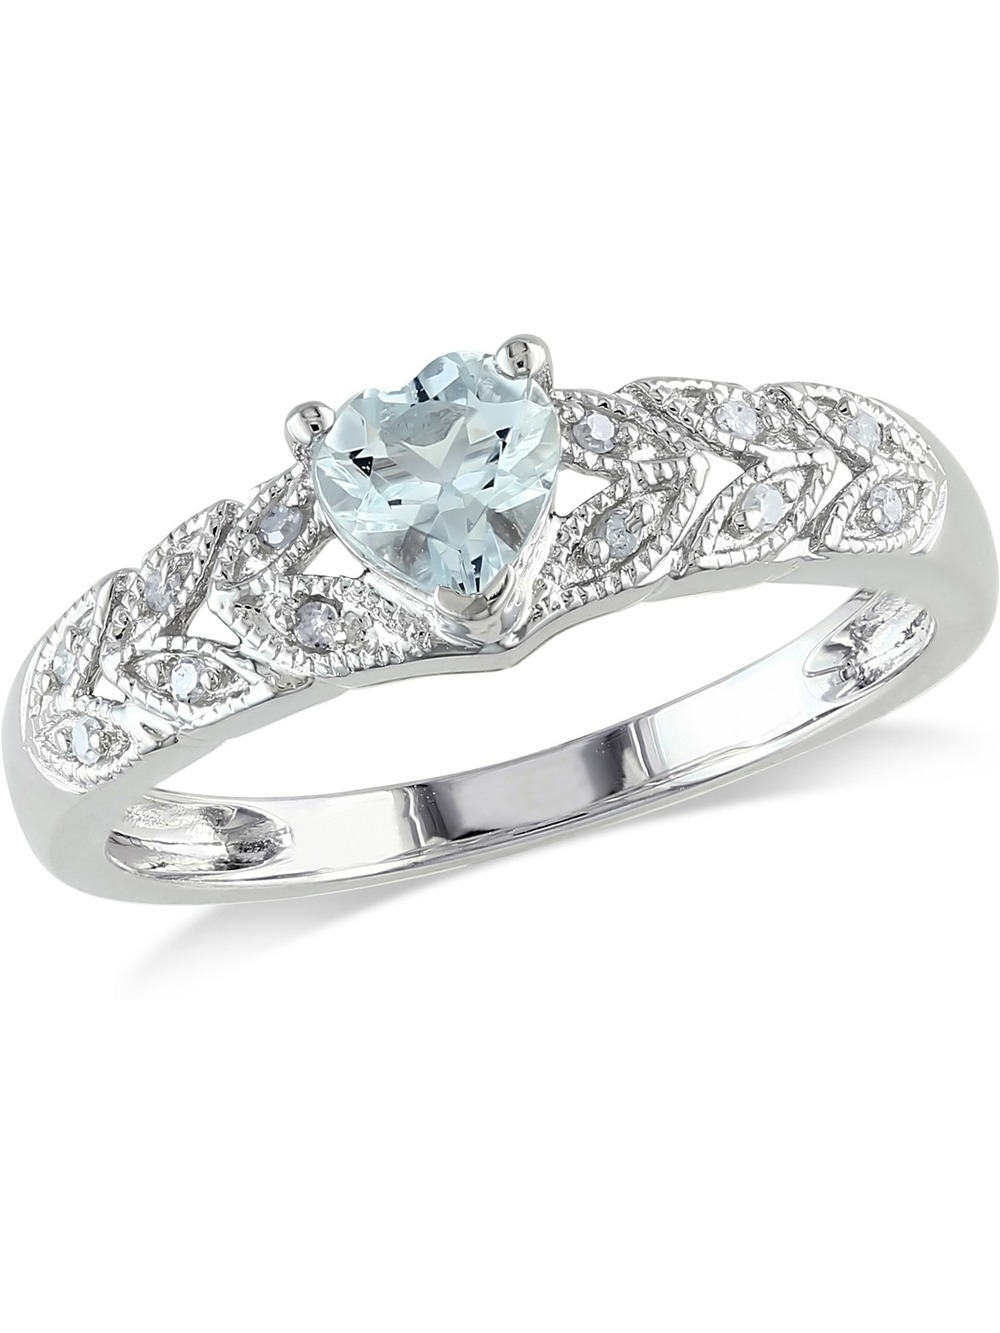 Aquamarine Heart Ring 2/5 Carat (ctw) with Diamonds in Sterling Silver